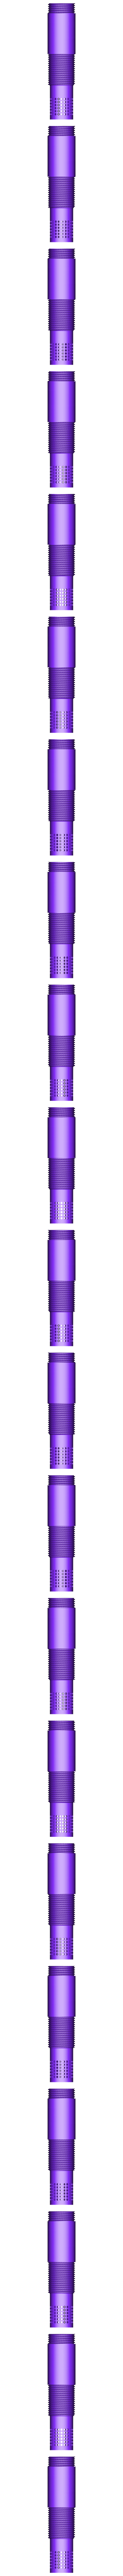 rod.stl Download STL file 26 Head Multi Cyclone Chamber (Compact Size Added) • 3D printing object, kanadali